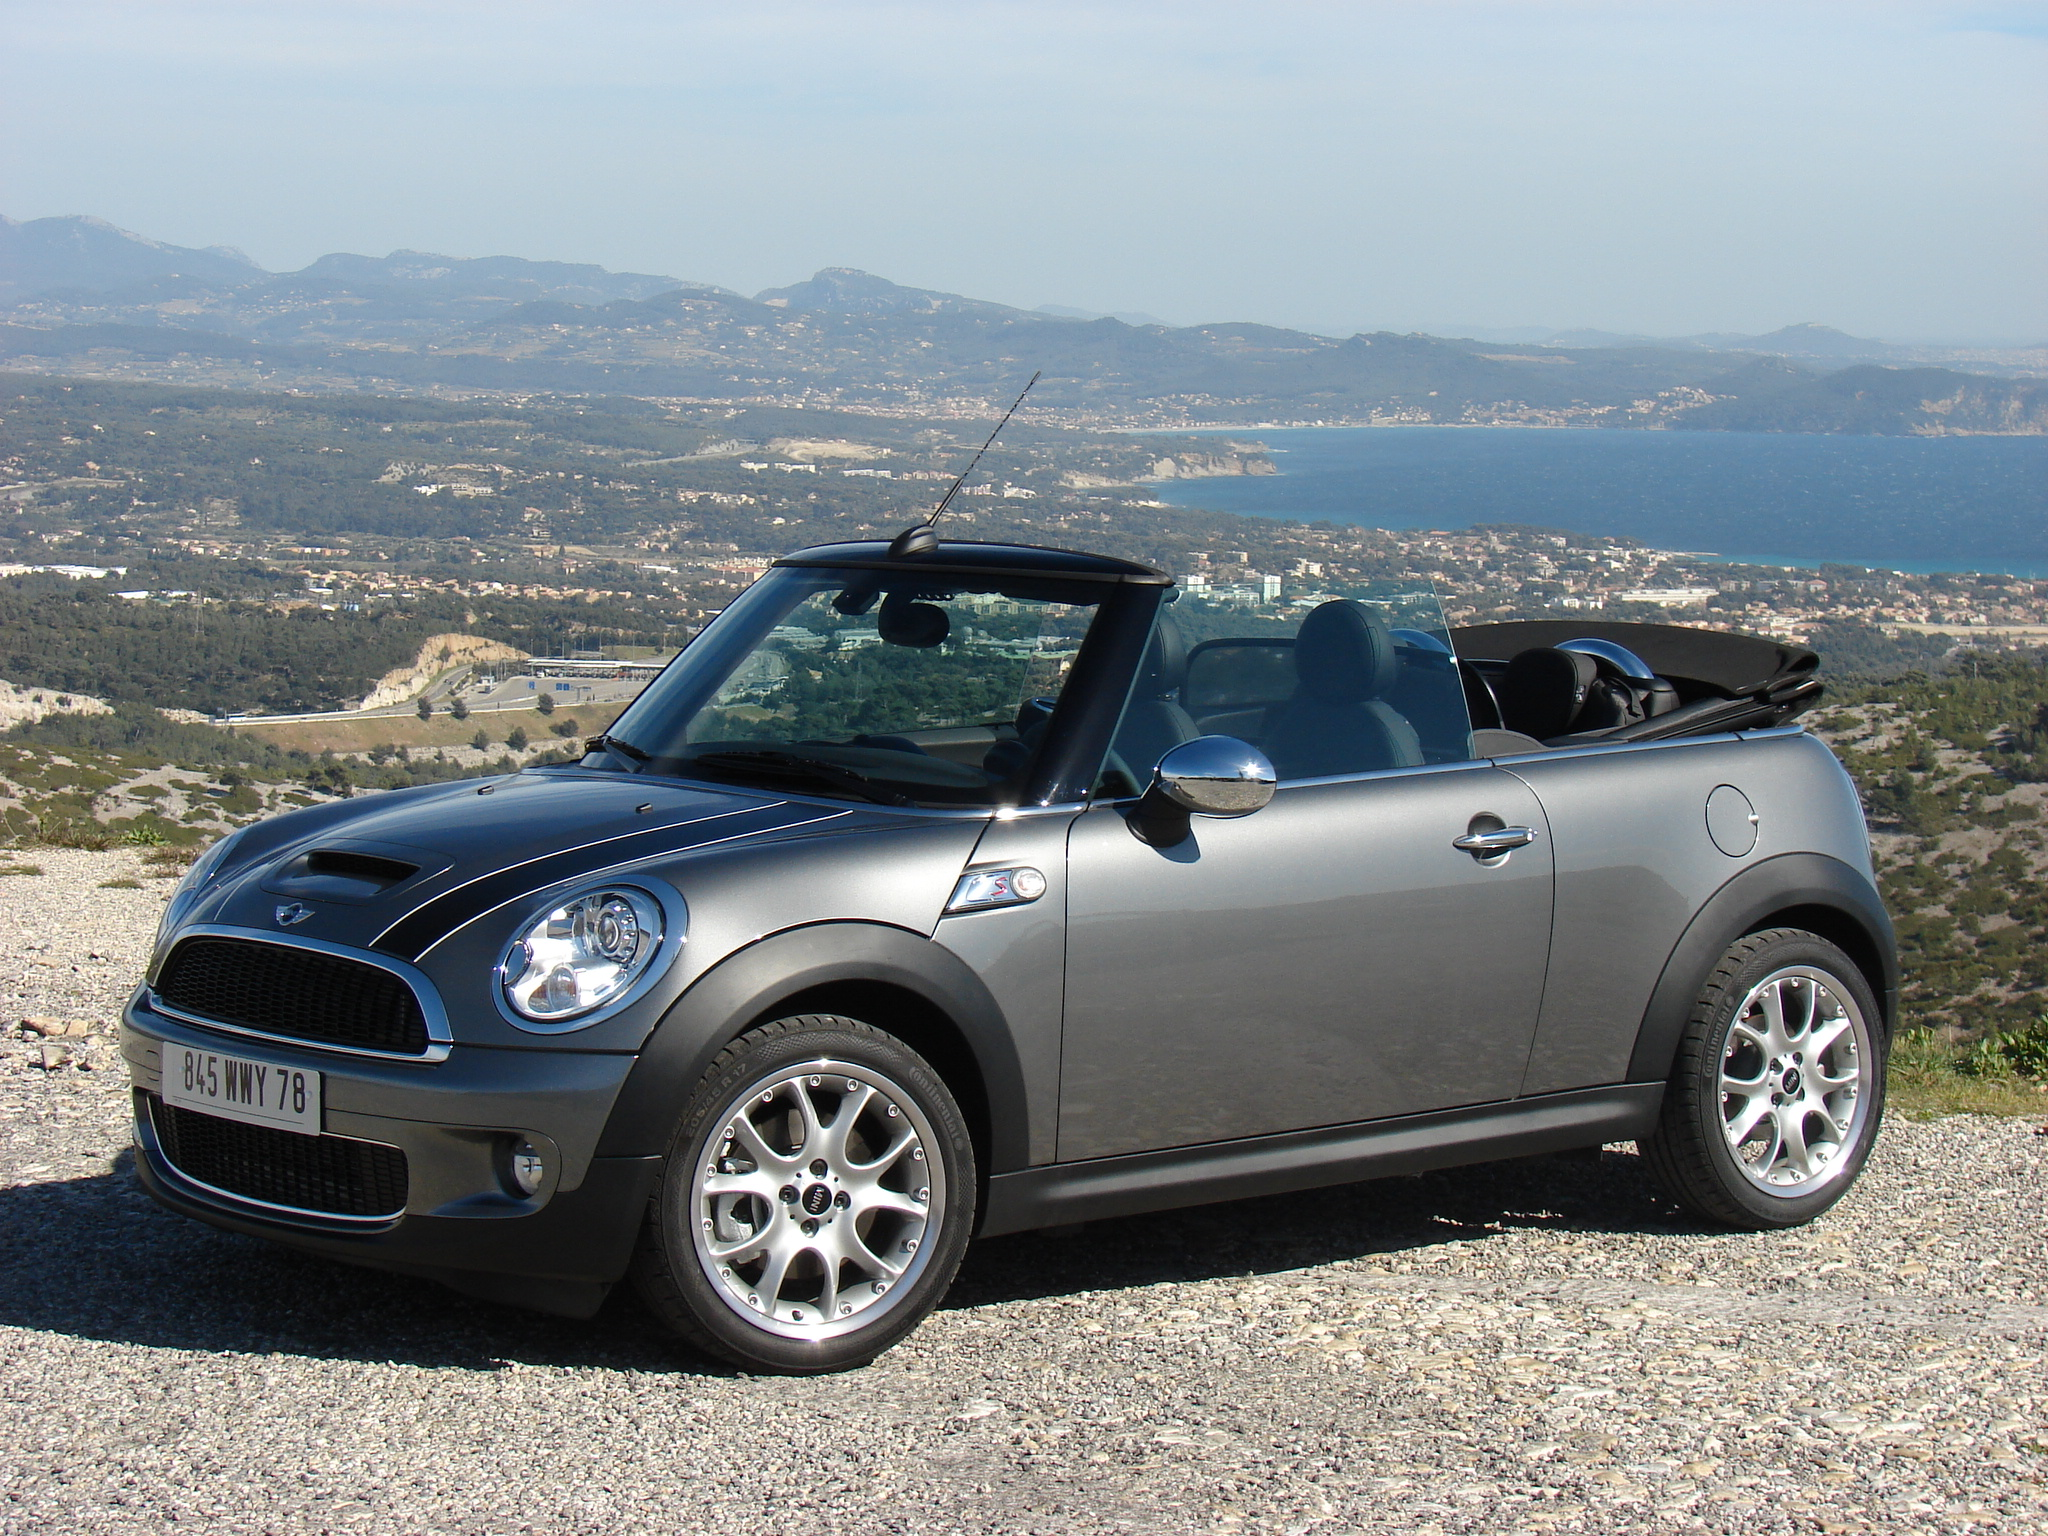 essai vid o mini cooper s cabriolet la star des beaux. Black Bedroom Furniture Sets. Home Design Ideas